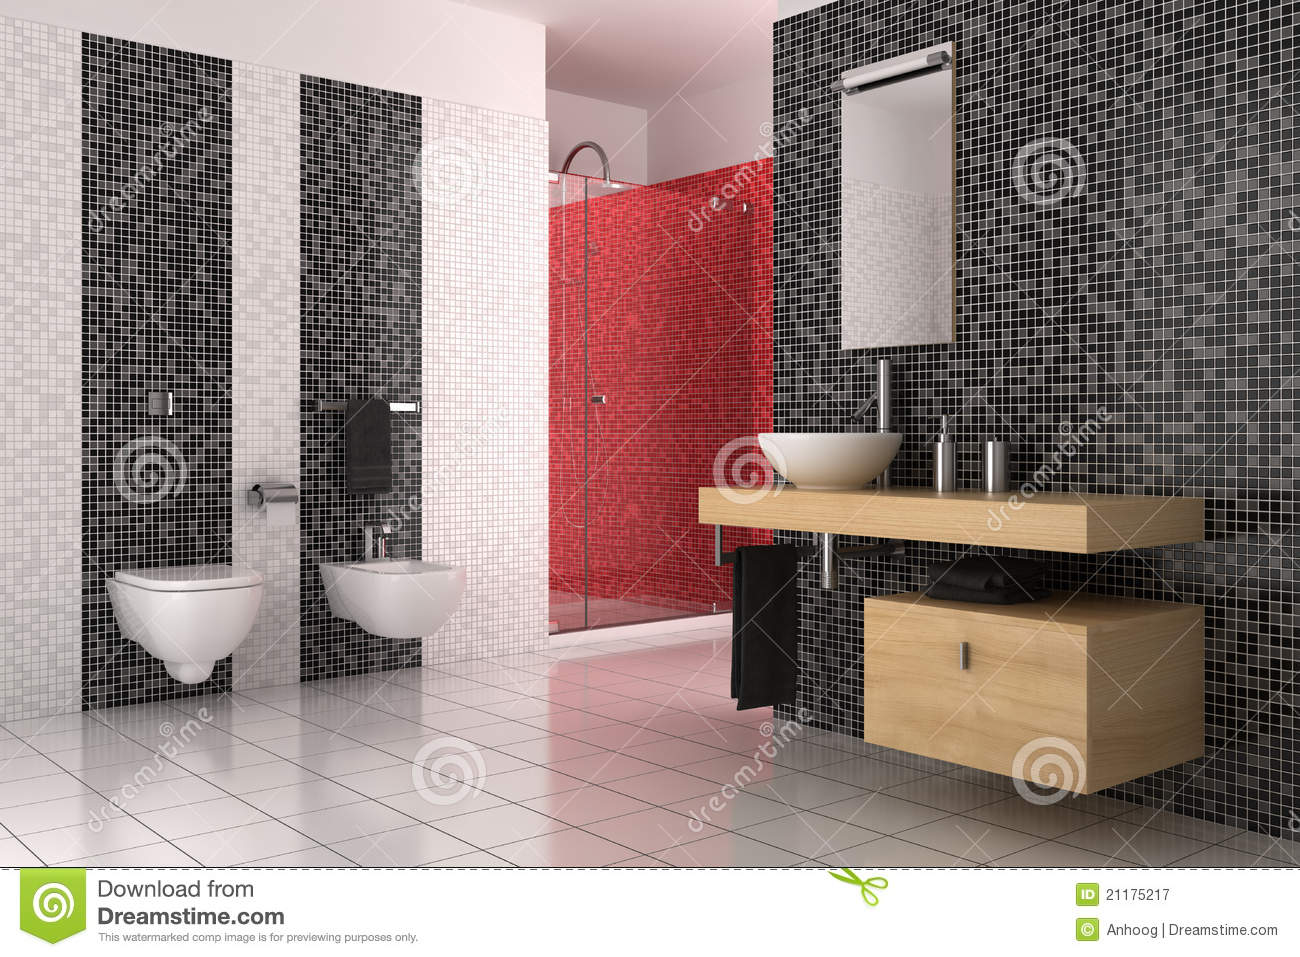 Black and white and red bathroom ideas - Design Ideas For Small Bathroom Simple Red And Black